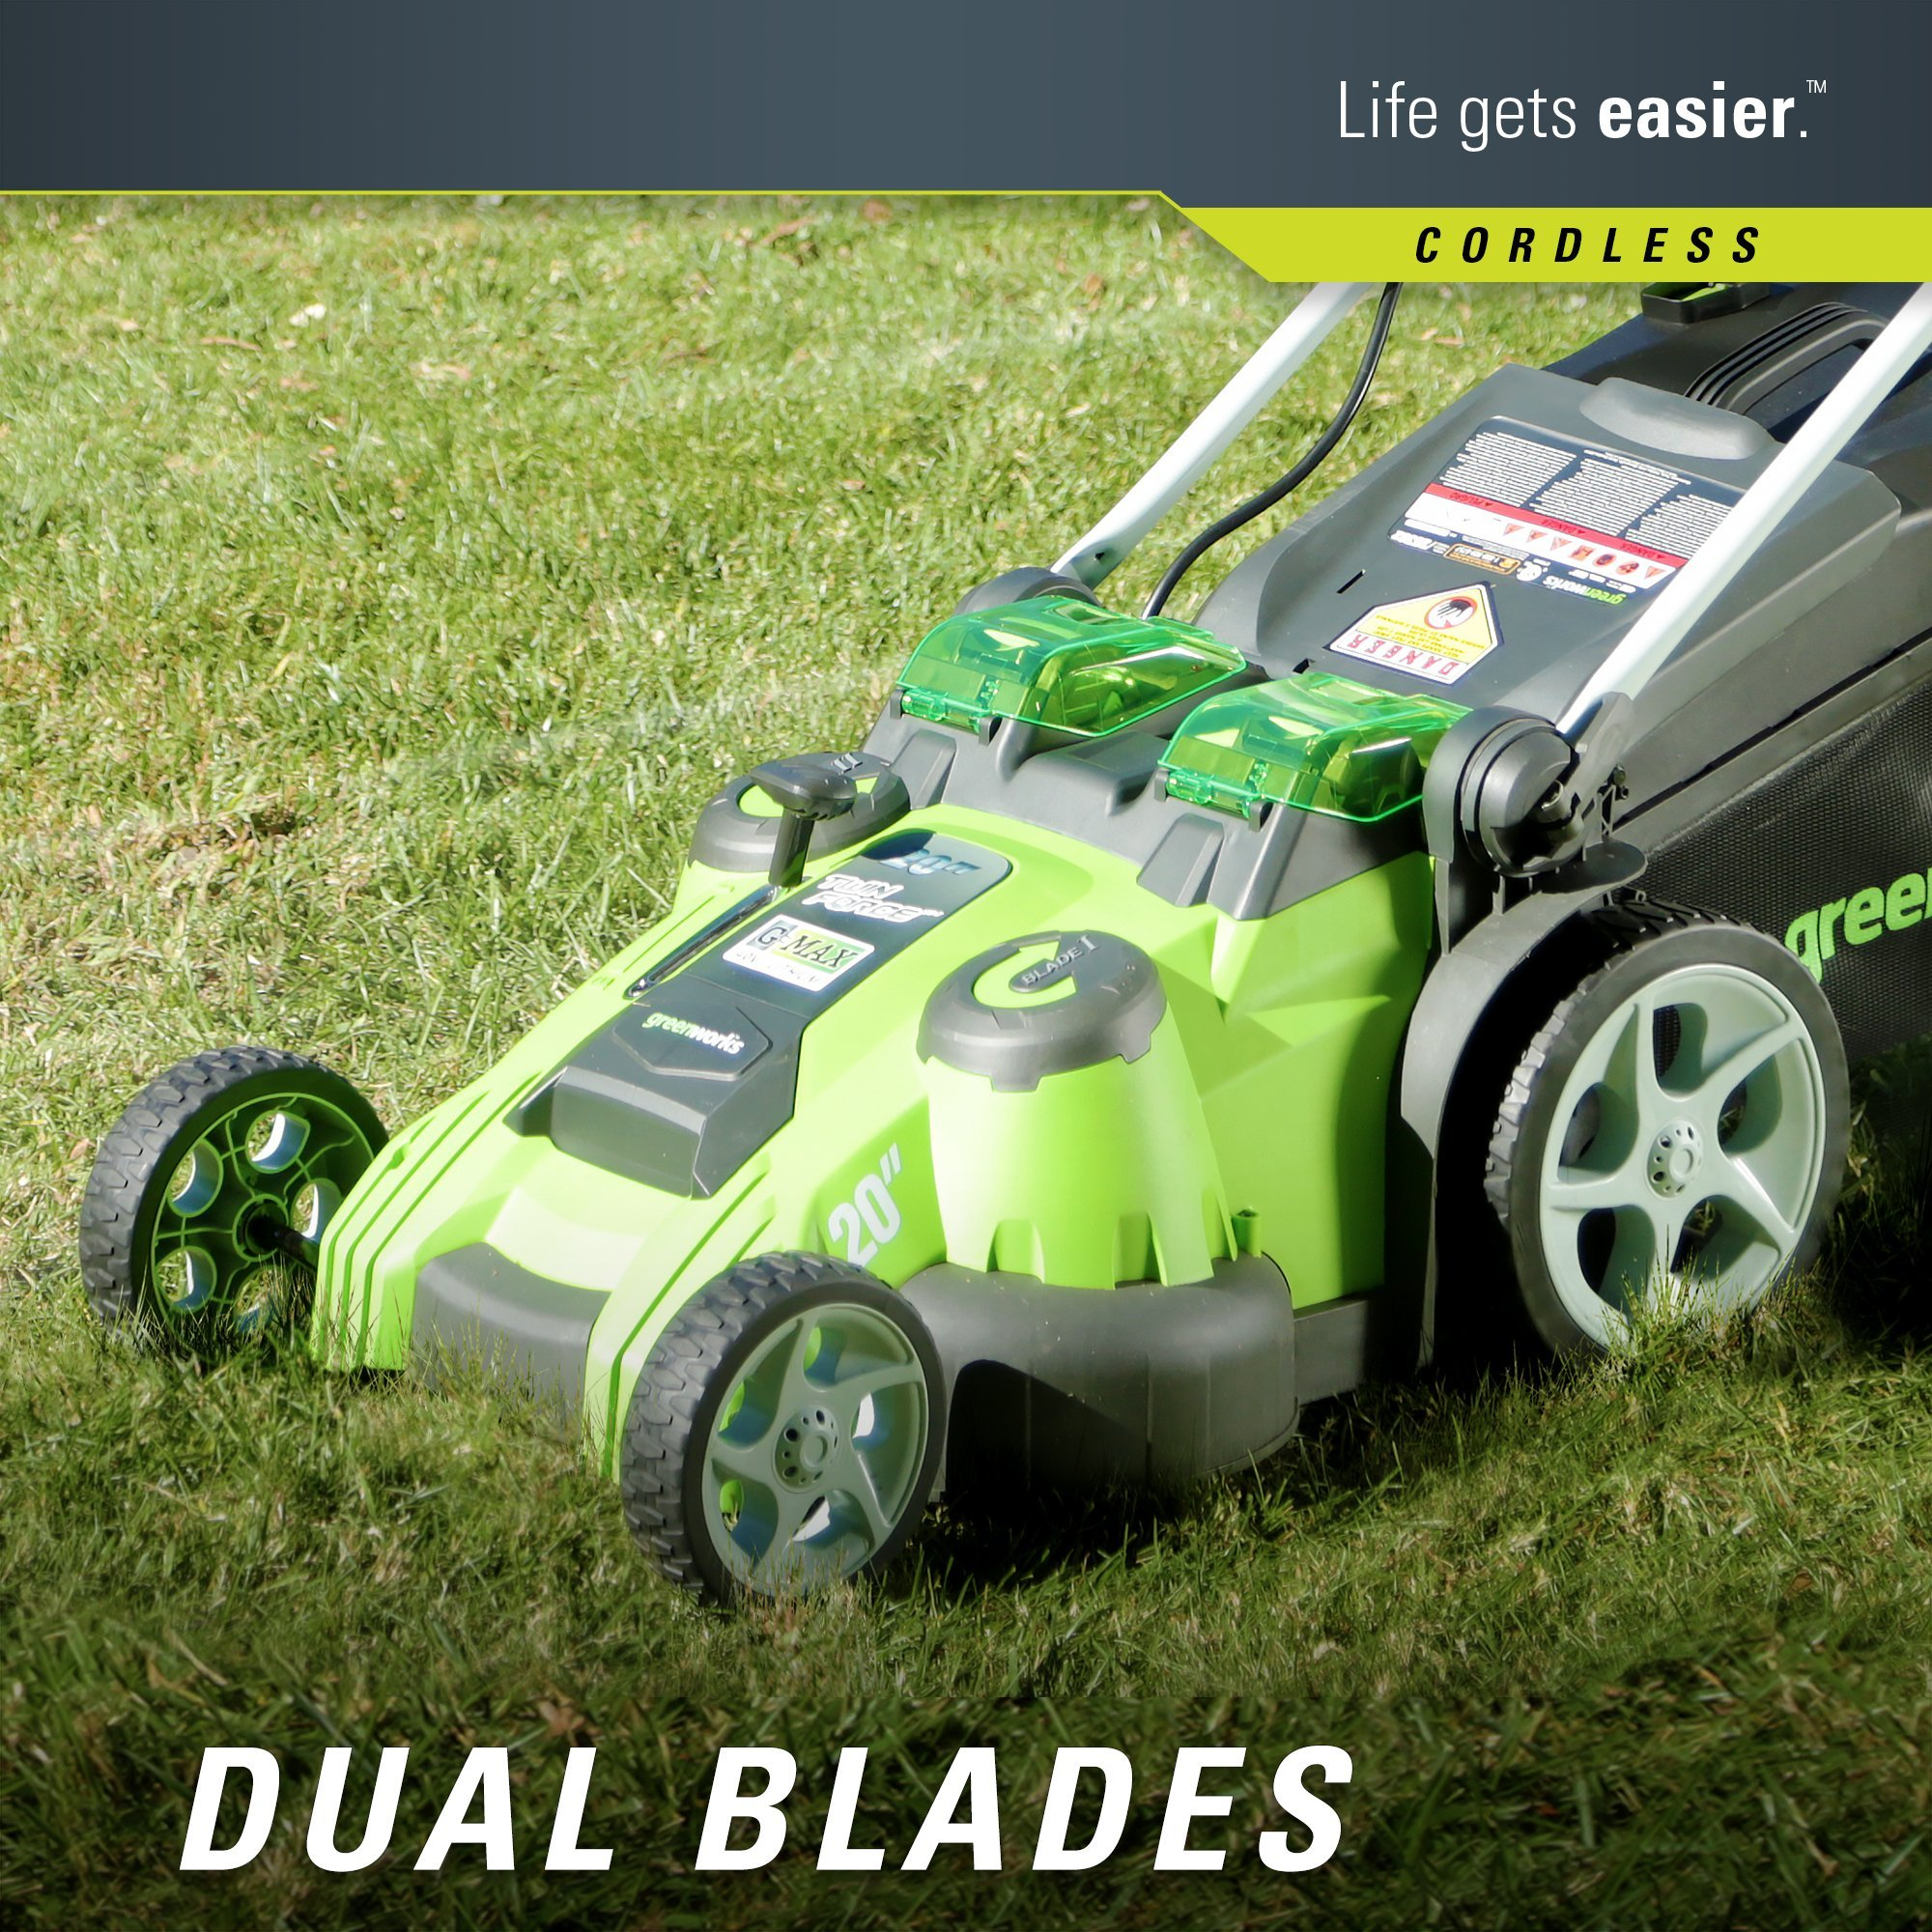 Greenworks 20-Inch 40V Twin Force Cordless Lawn Mower, 4.0 AH & 2.0 AH Batteries Included 25302 by Greenworks (Image #6)